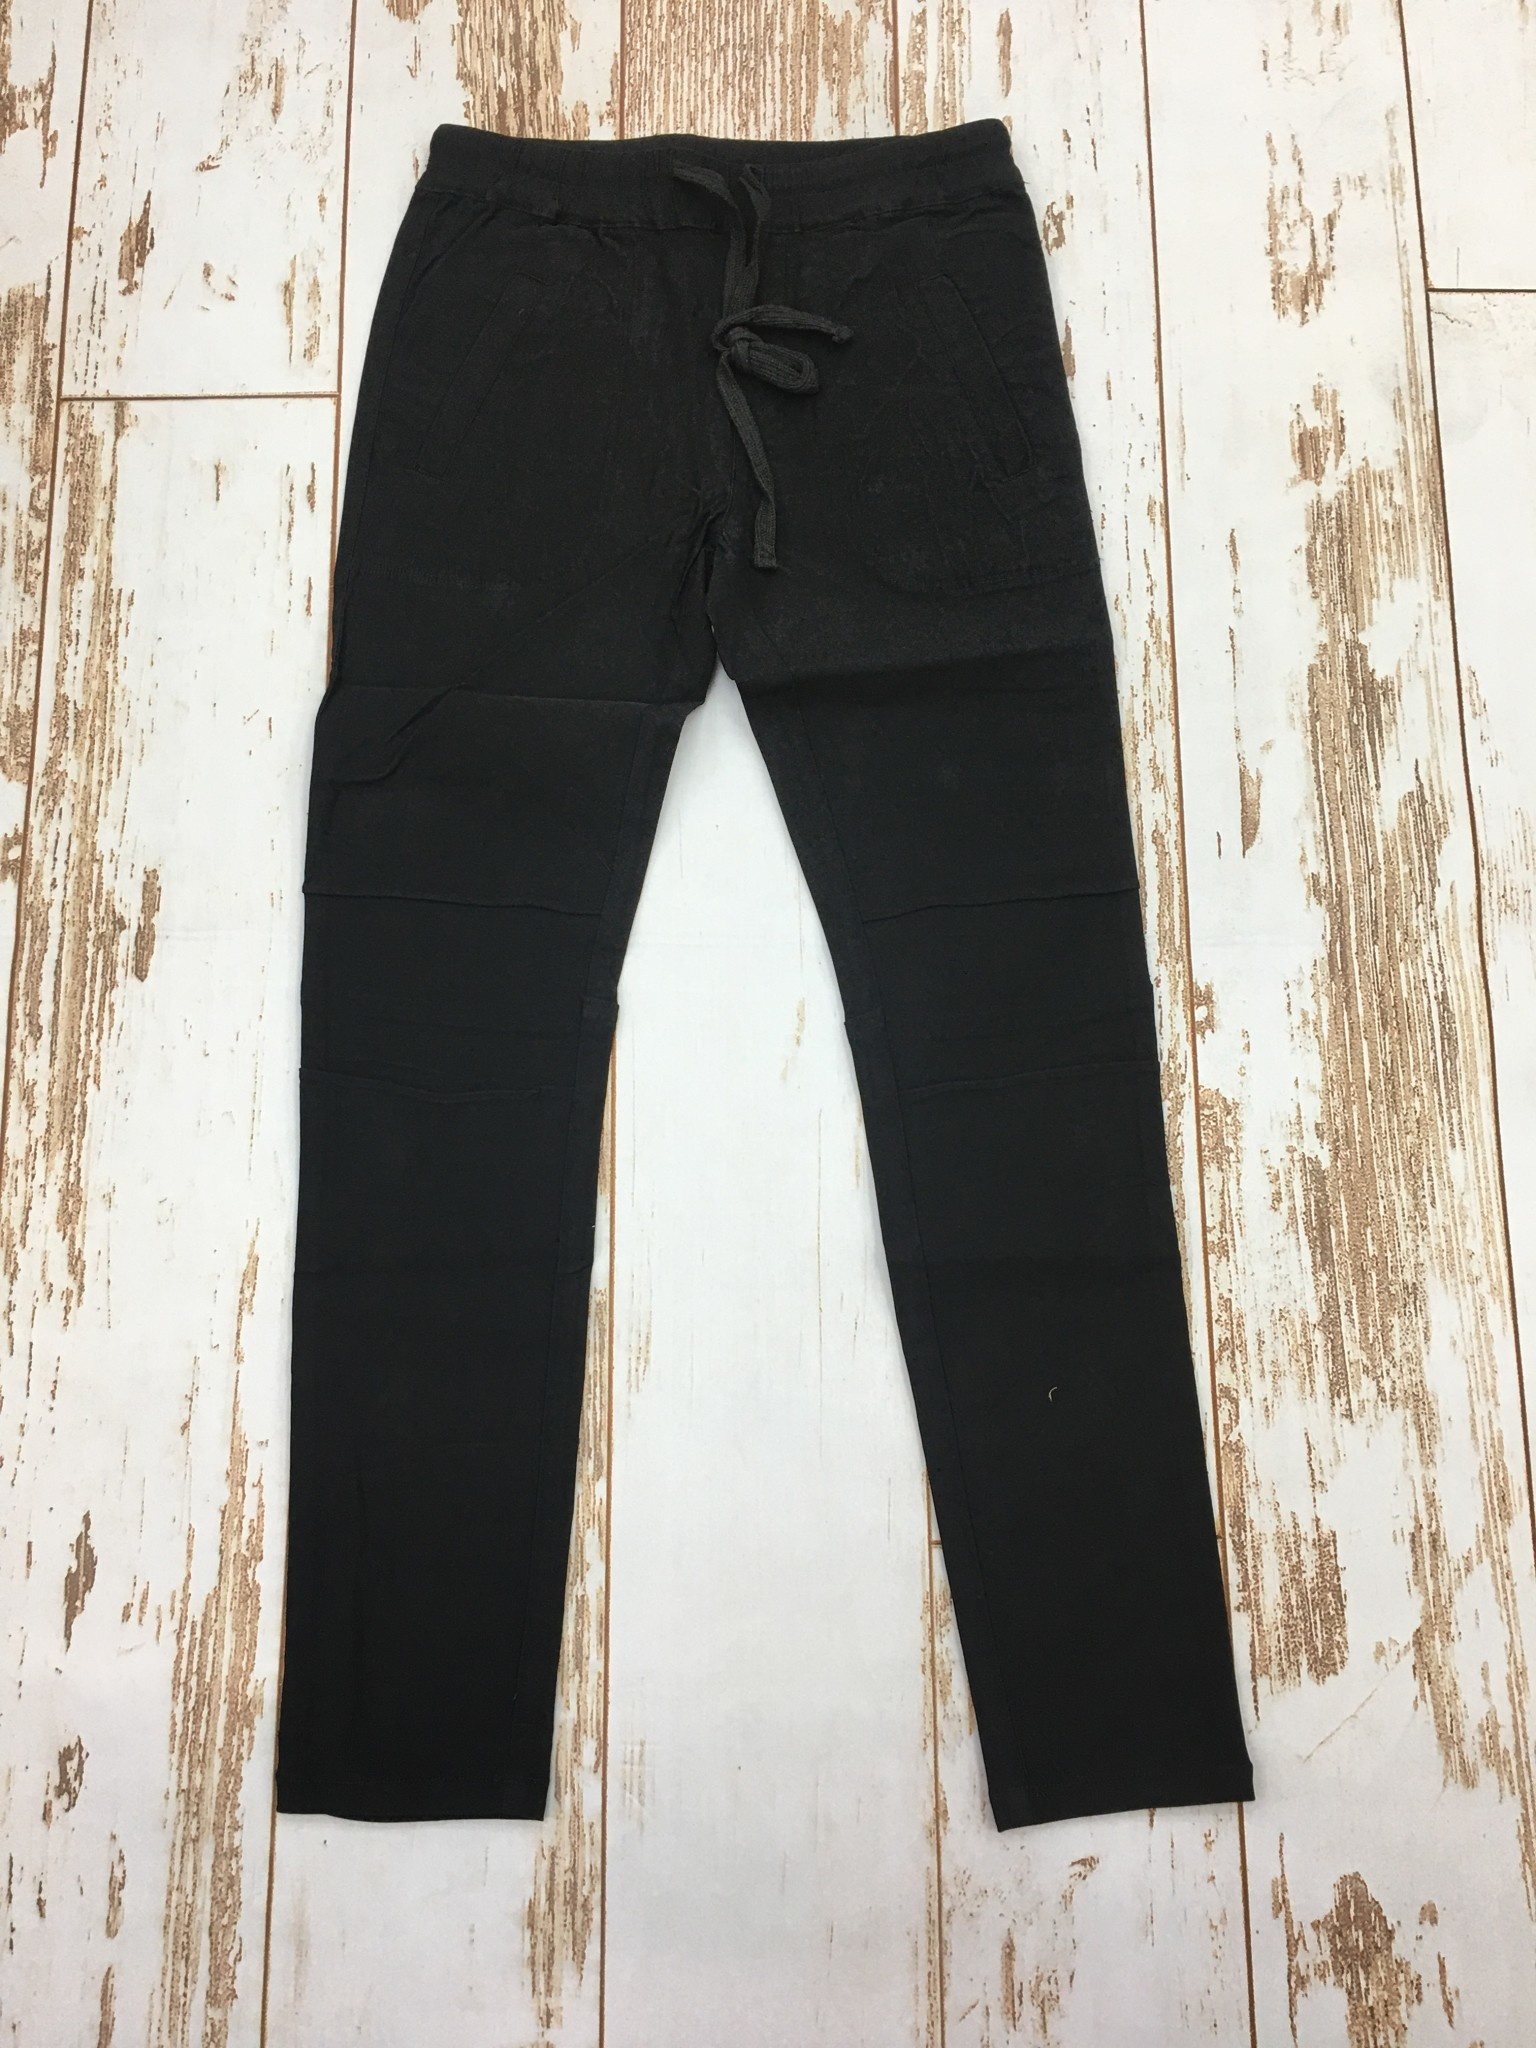 KLD Stretch Pant with Drawstring in Black